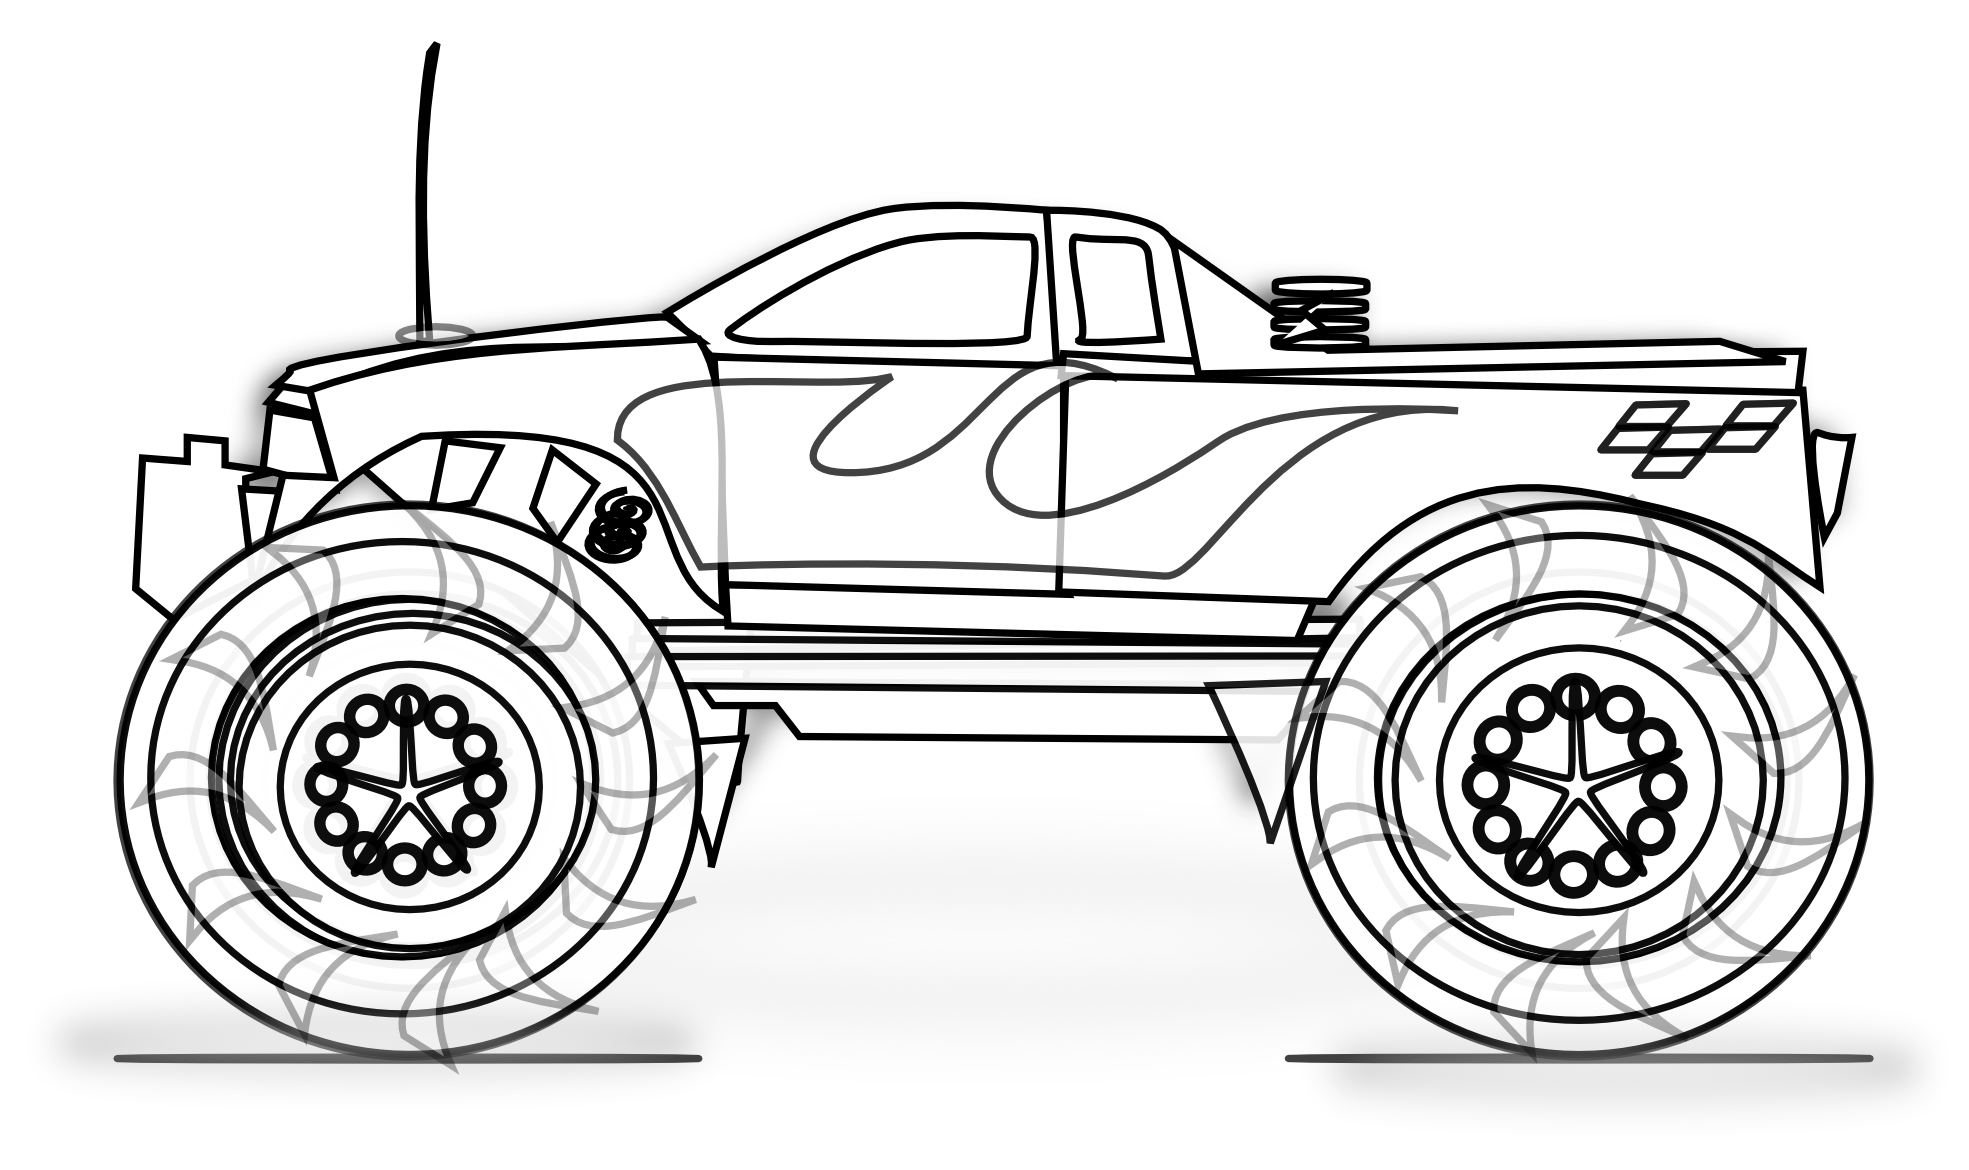 truck coloring games amazing monster truck jump over a few cars coloring page truck coloring games